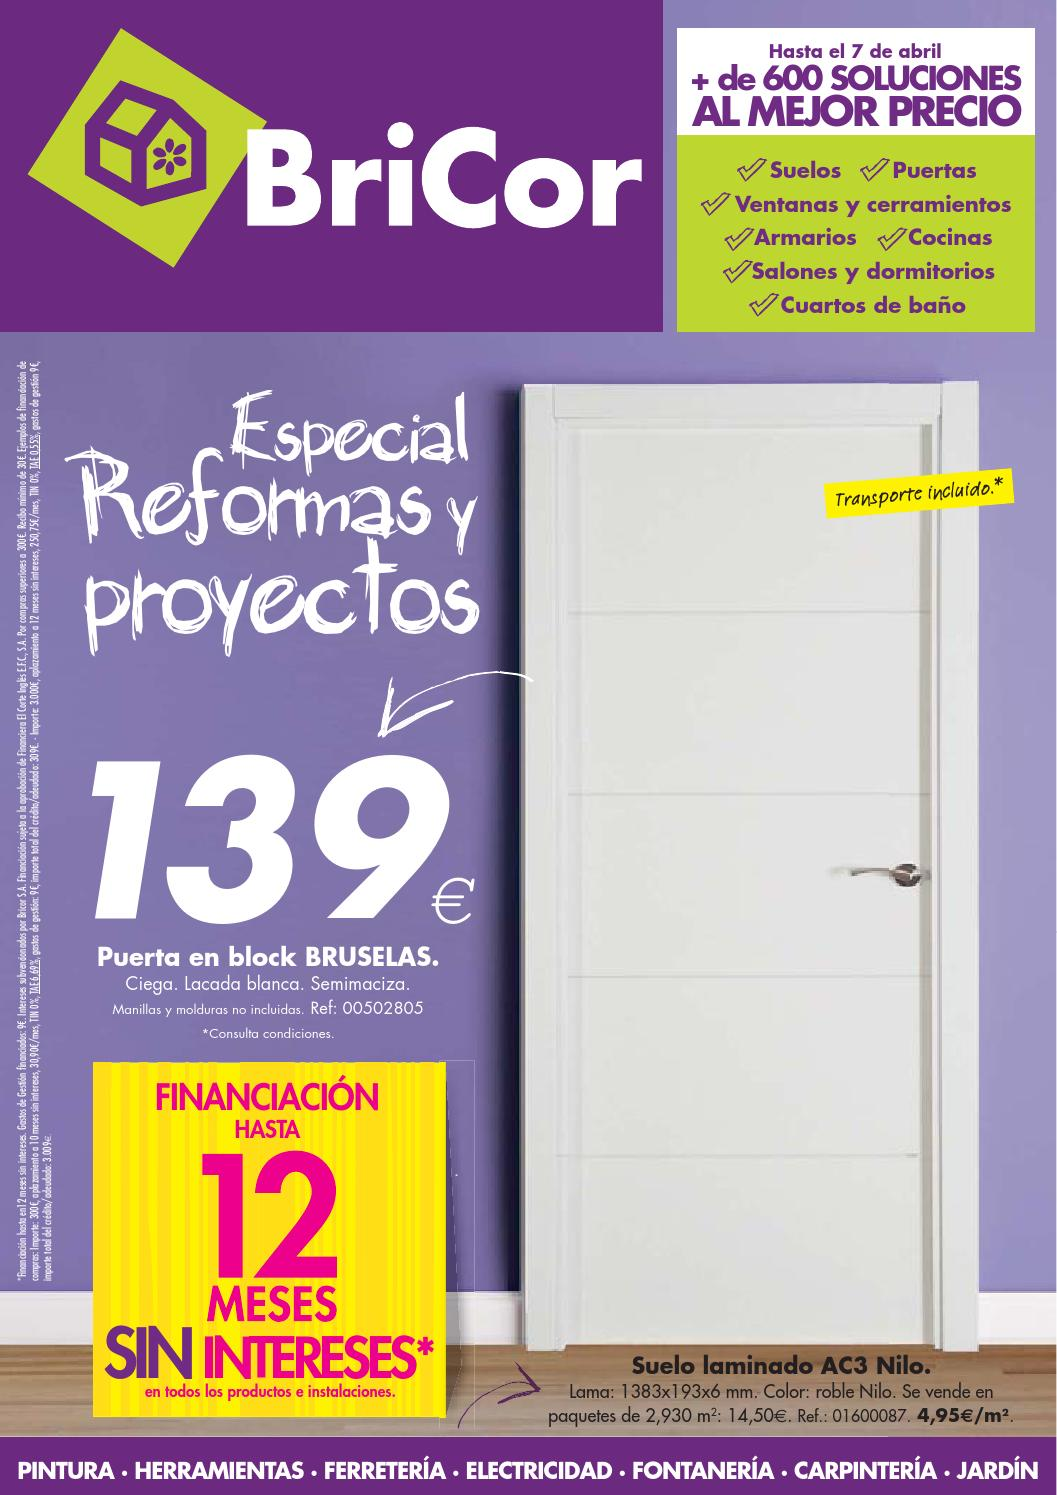 Bricor 7 abril by losdescuentos issuu - Manillas puertas bricor ...